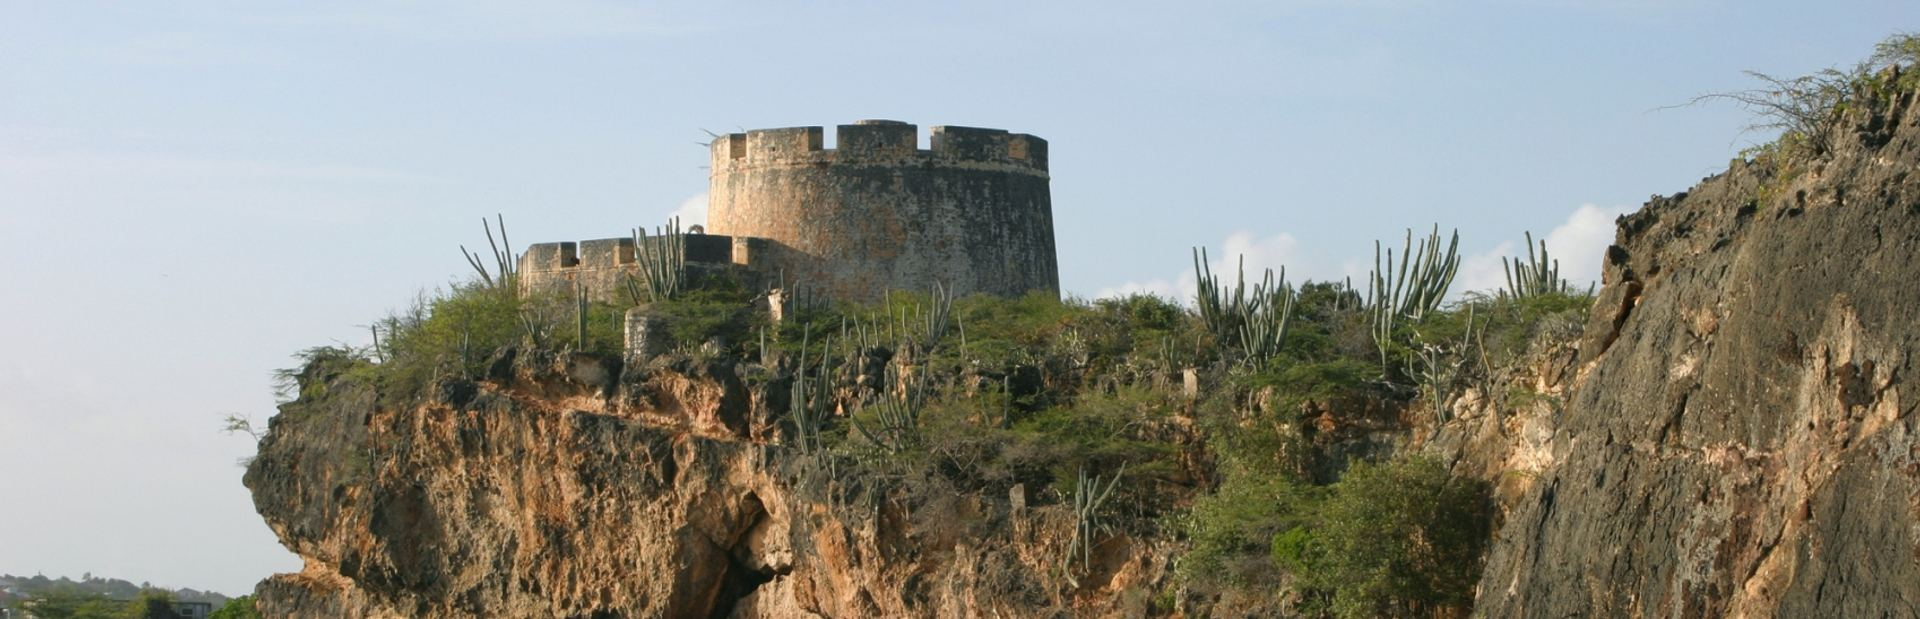 Fortress castle in Curacao